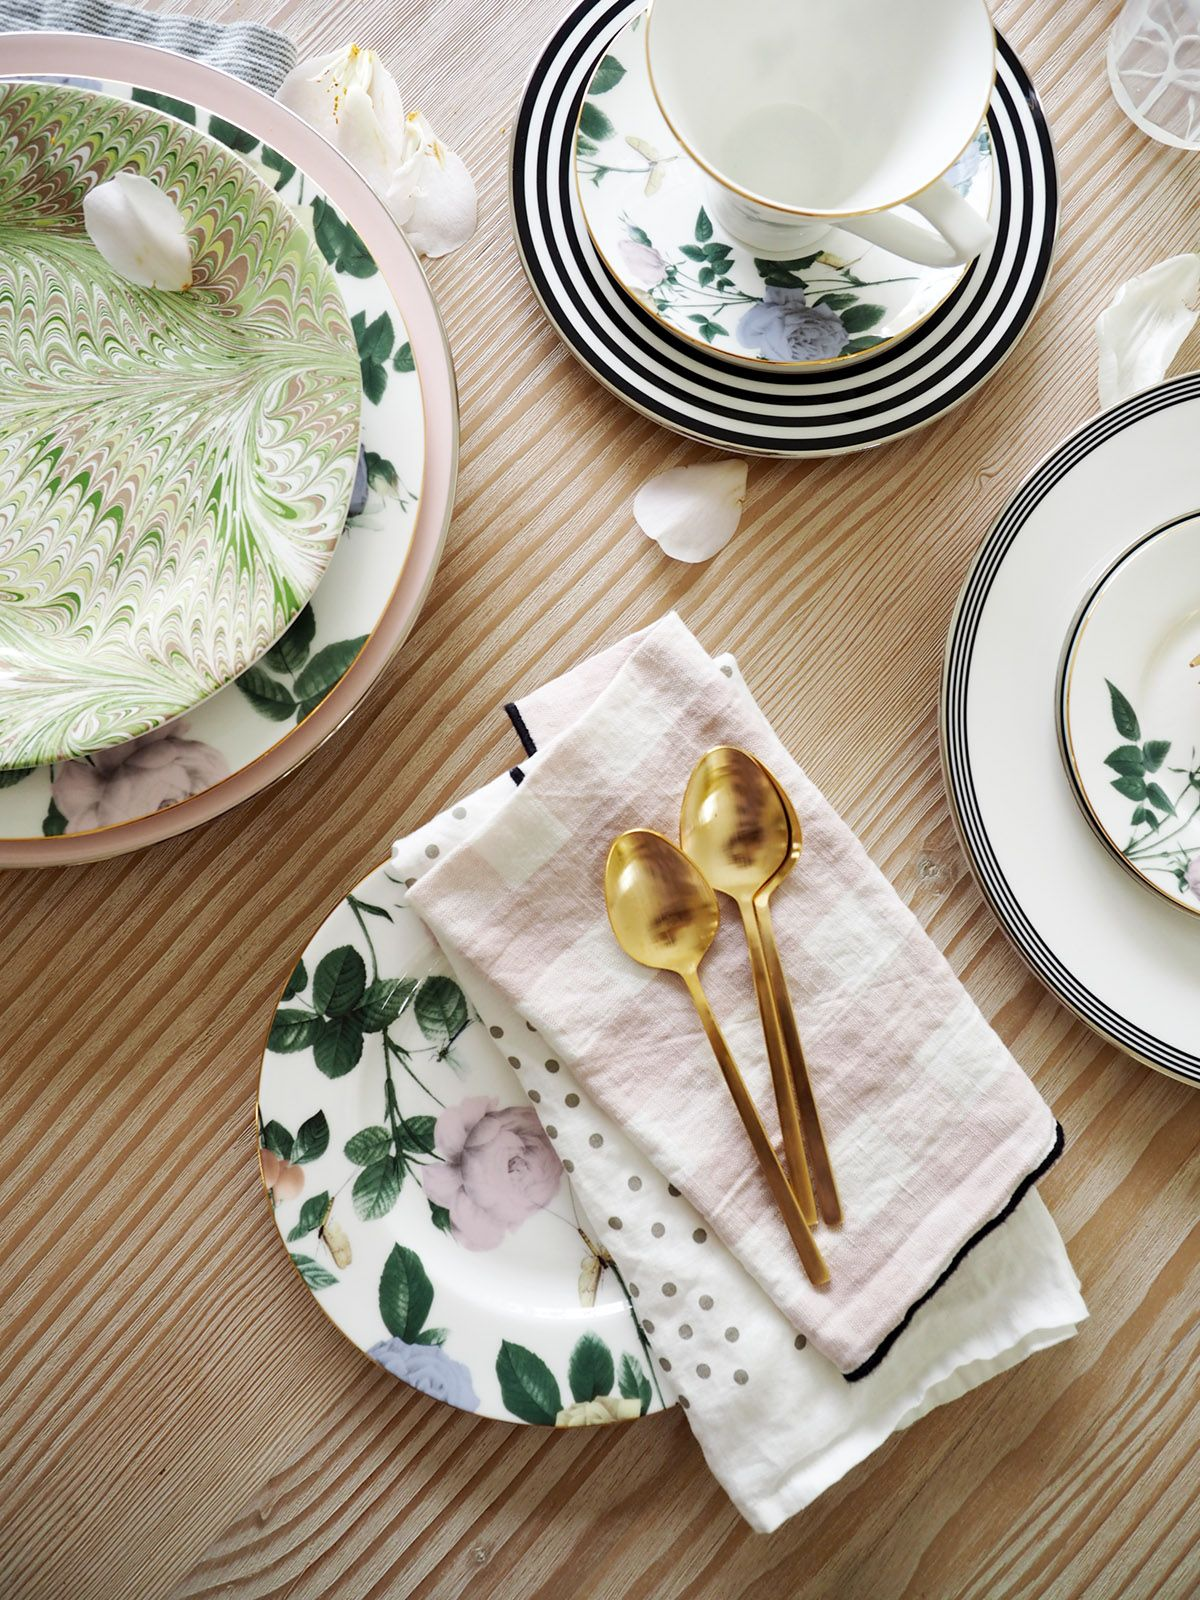 How To Mix N Match China For A Modern Registry Coco Kelley Unique Table Settings Top Wedding Registry Items Homemade Xmas Decorations Mix and match dinnerware sets